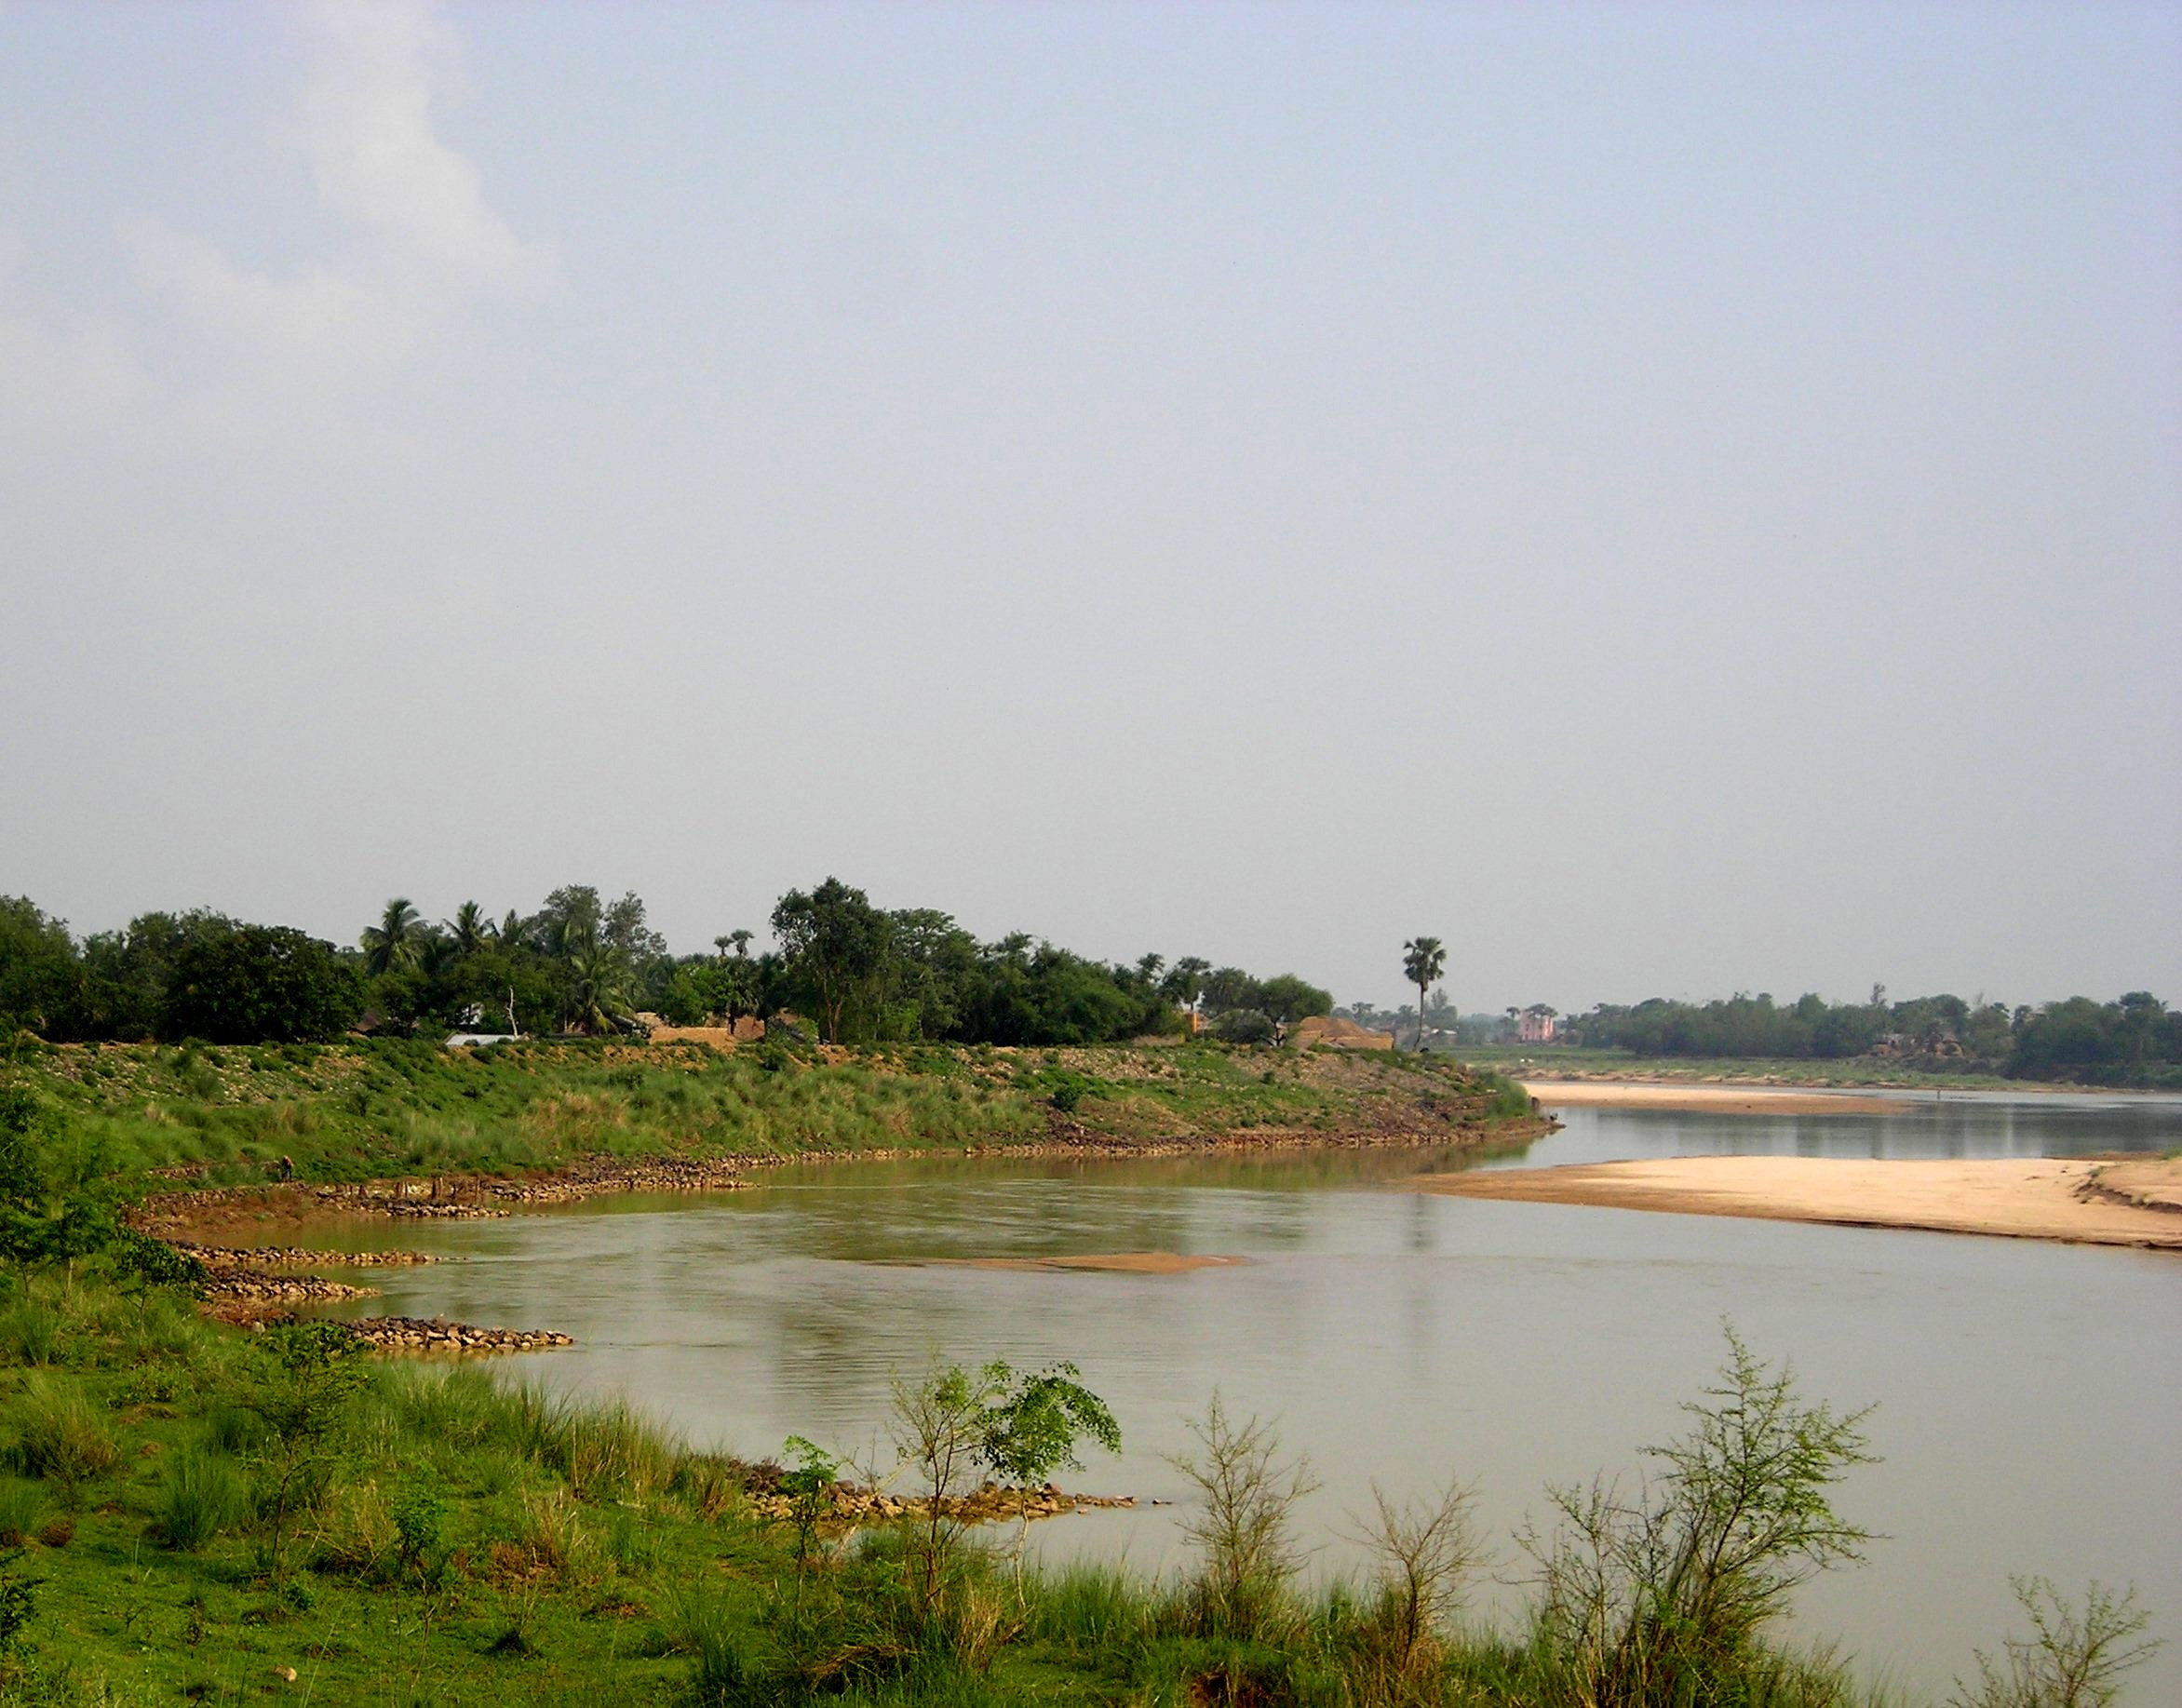 Winning Photograph - Sandy Point Bar (distinct feature of meandering river) on a reach on the Ajay River, West Bengal, India (23°38'26.25'' N, 88° 1'41.73'' E)